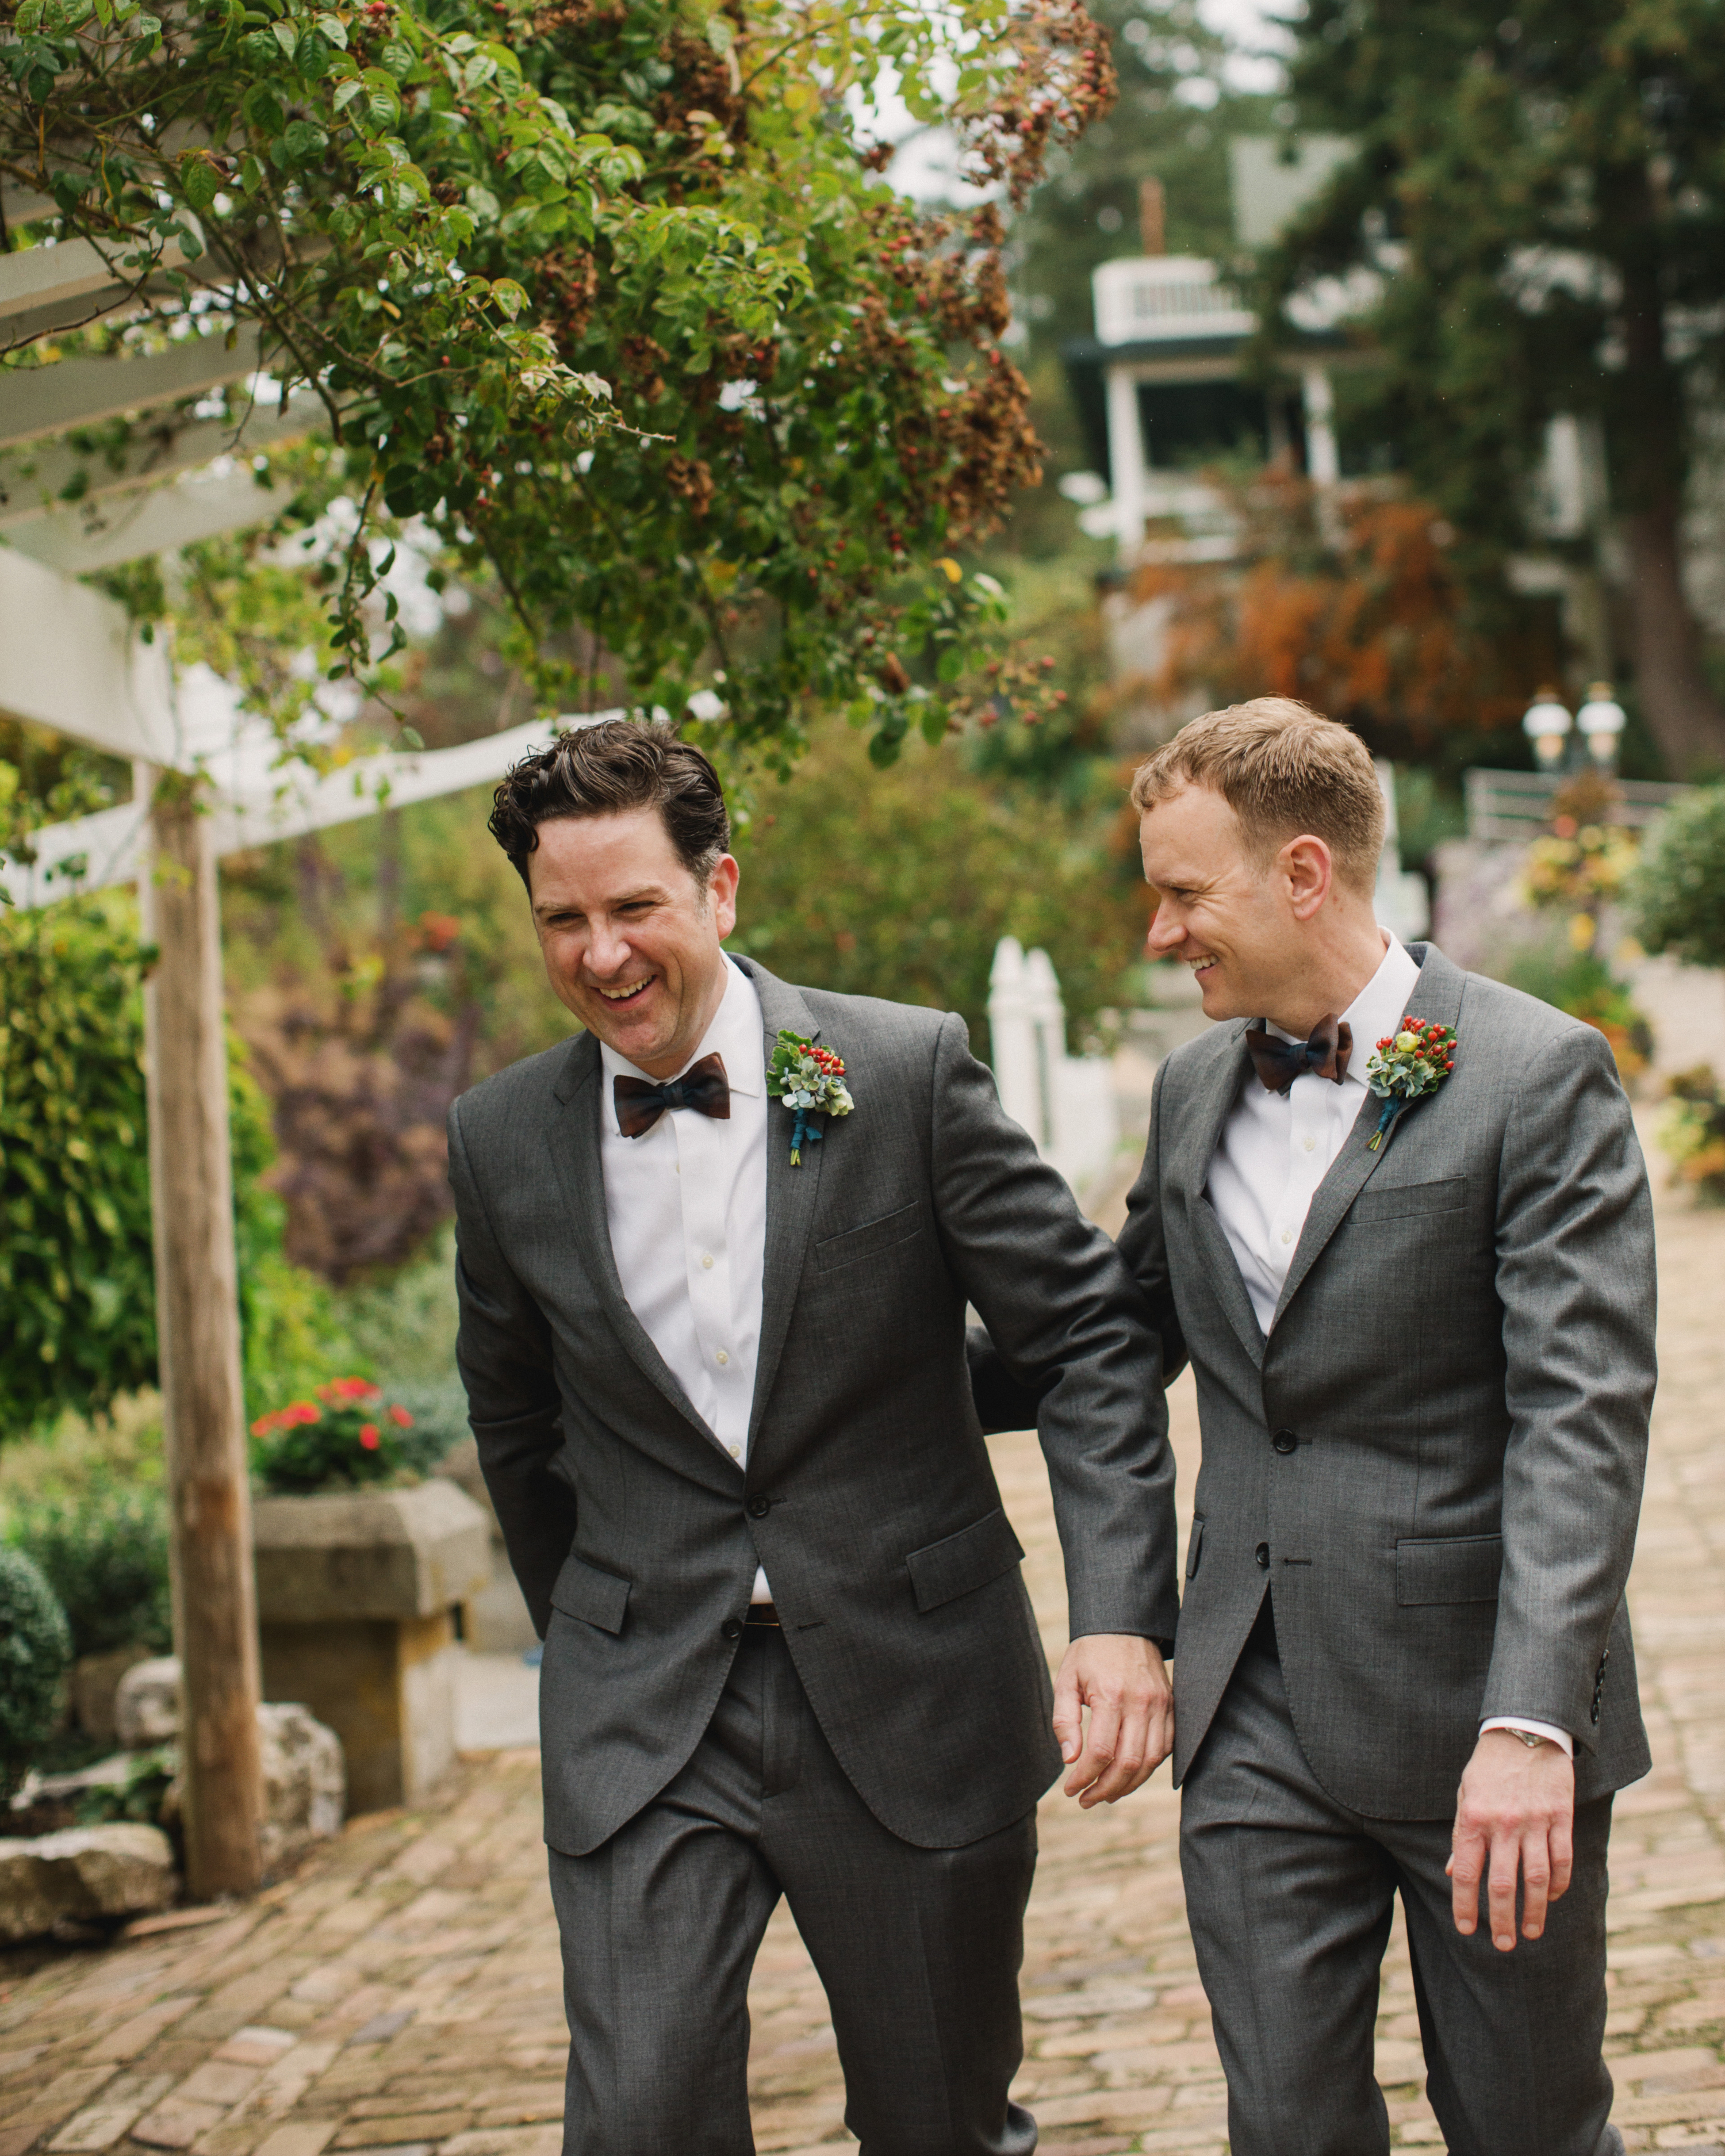 craig-andrew-wedding-couple-233-s111833-0215.jpg